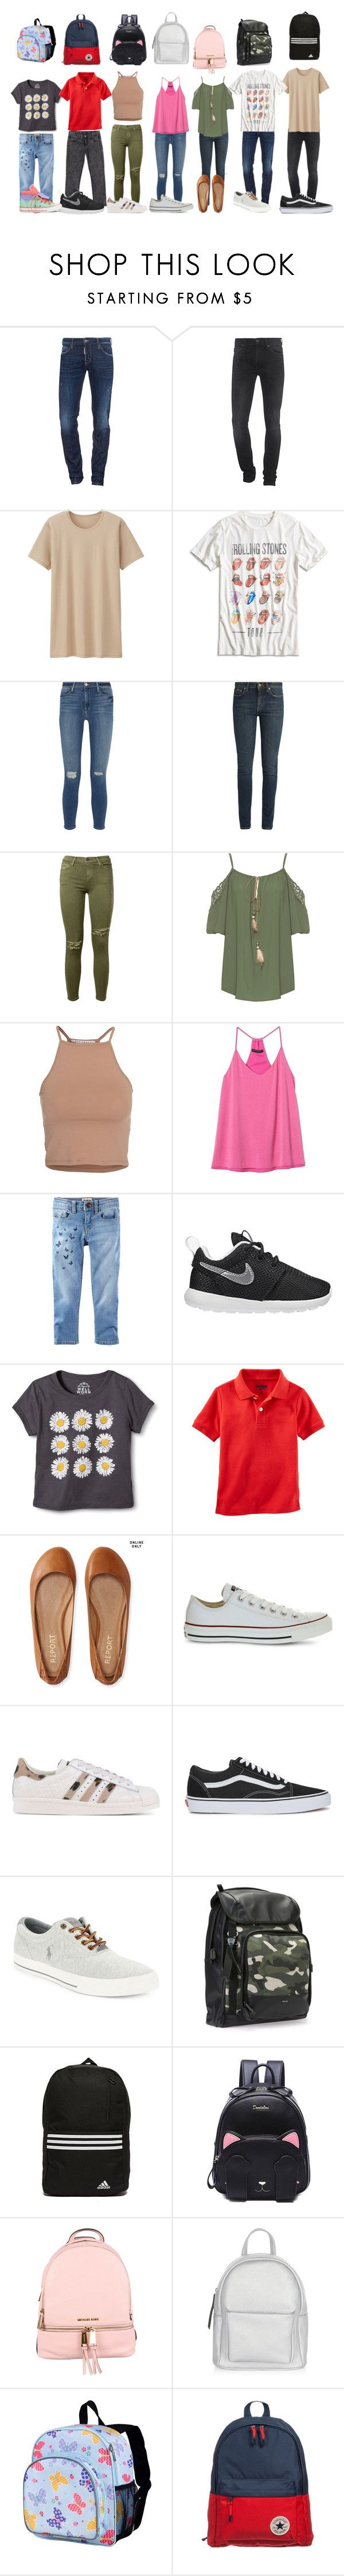 """""""School"""" by rawr-rawr-dinoxx ❤ liked on Polyvore featuring Dsquared2, 7 For All Mankind, Uniqlo, Lucky Brand, Frame Denim, Yves Saint Laurent, Current/Elliott, WearAll, NLY Trend and Banana Republic"""